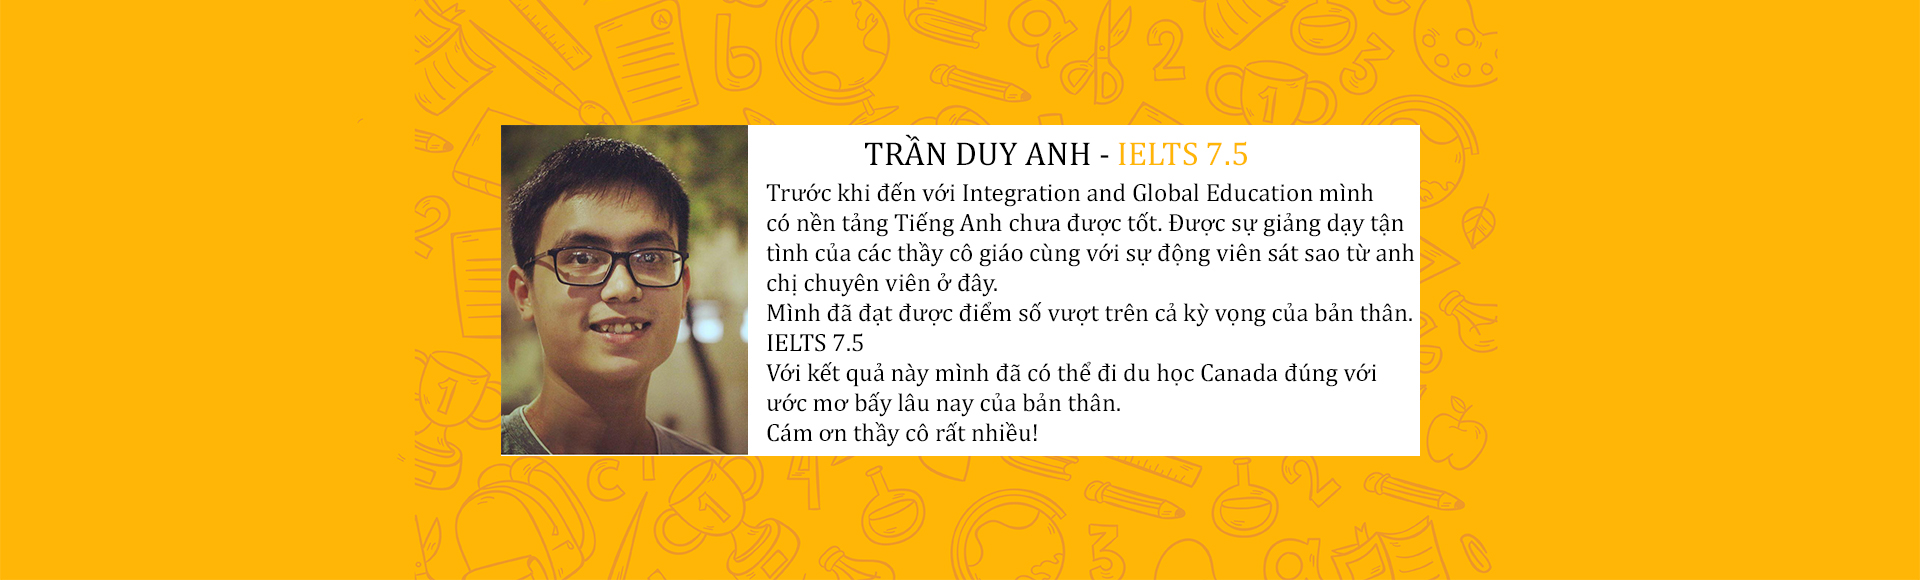 duy anh - luyện thi ielts